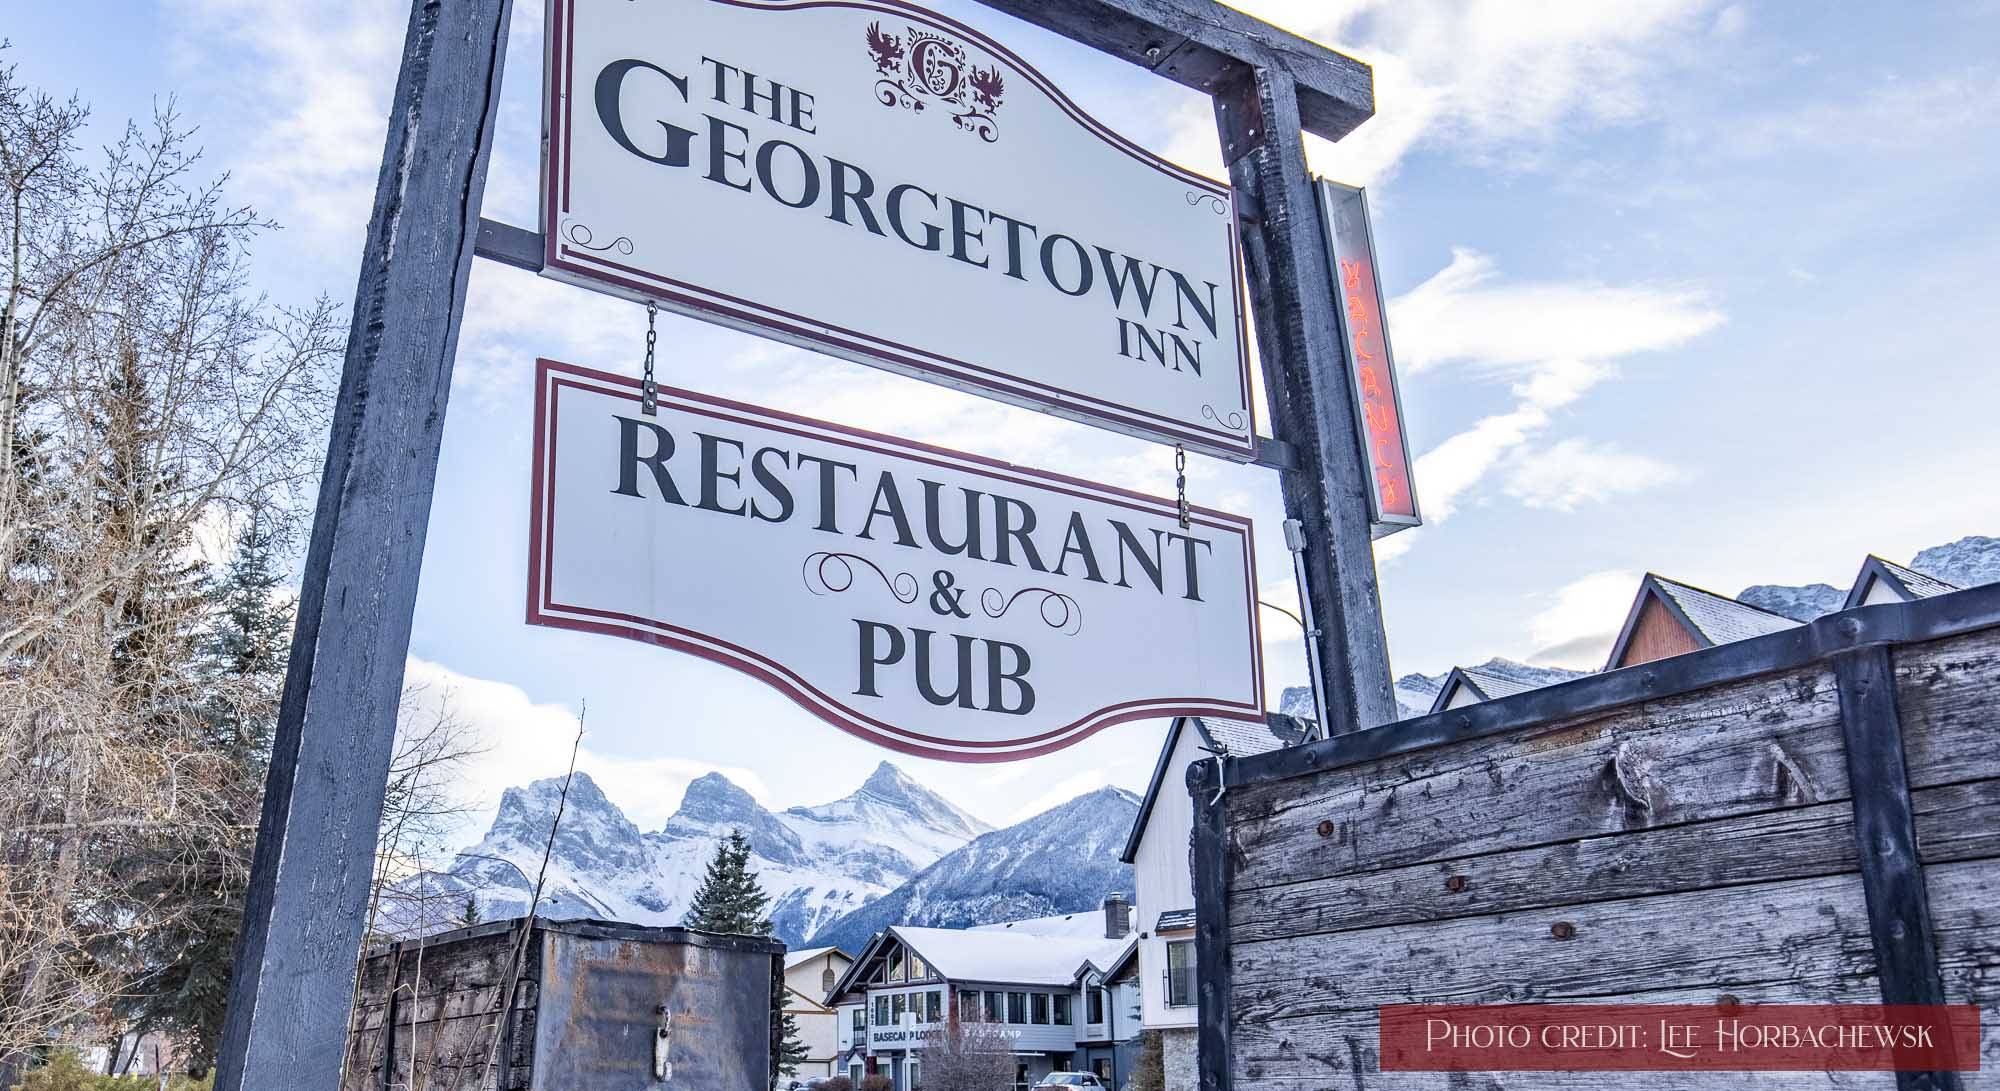 The Georgetown Inn's exterior sign in winter.